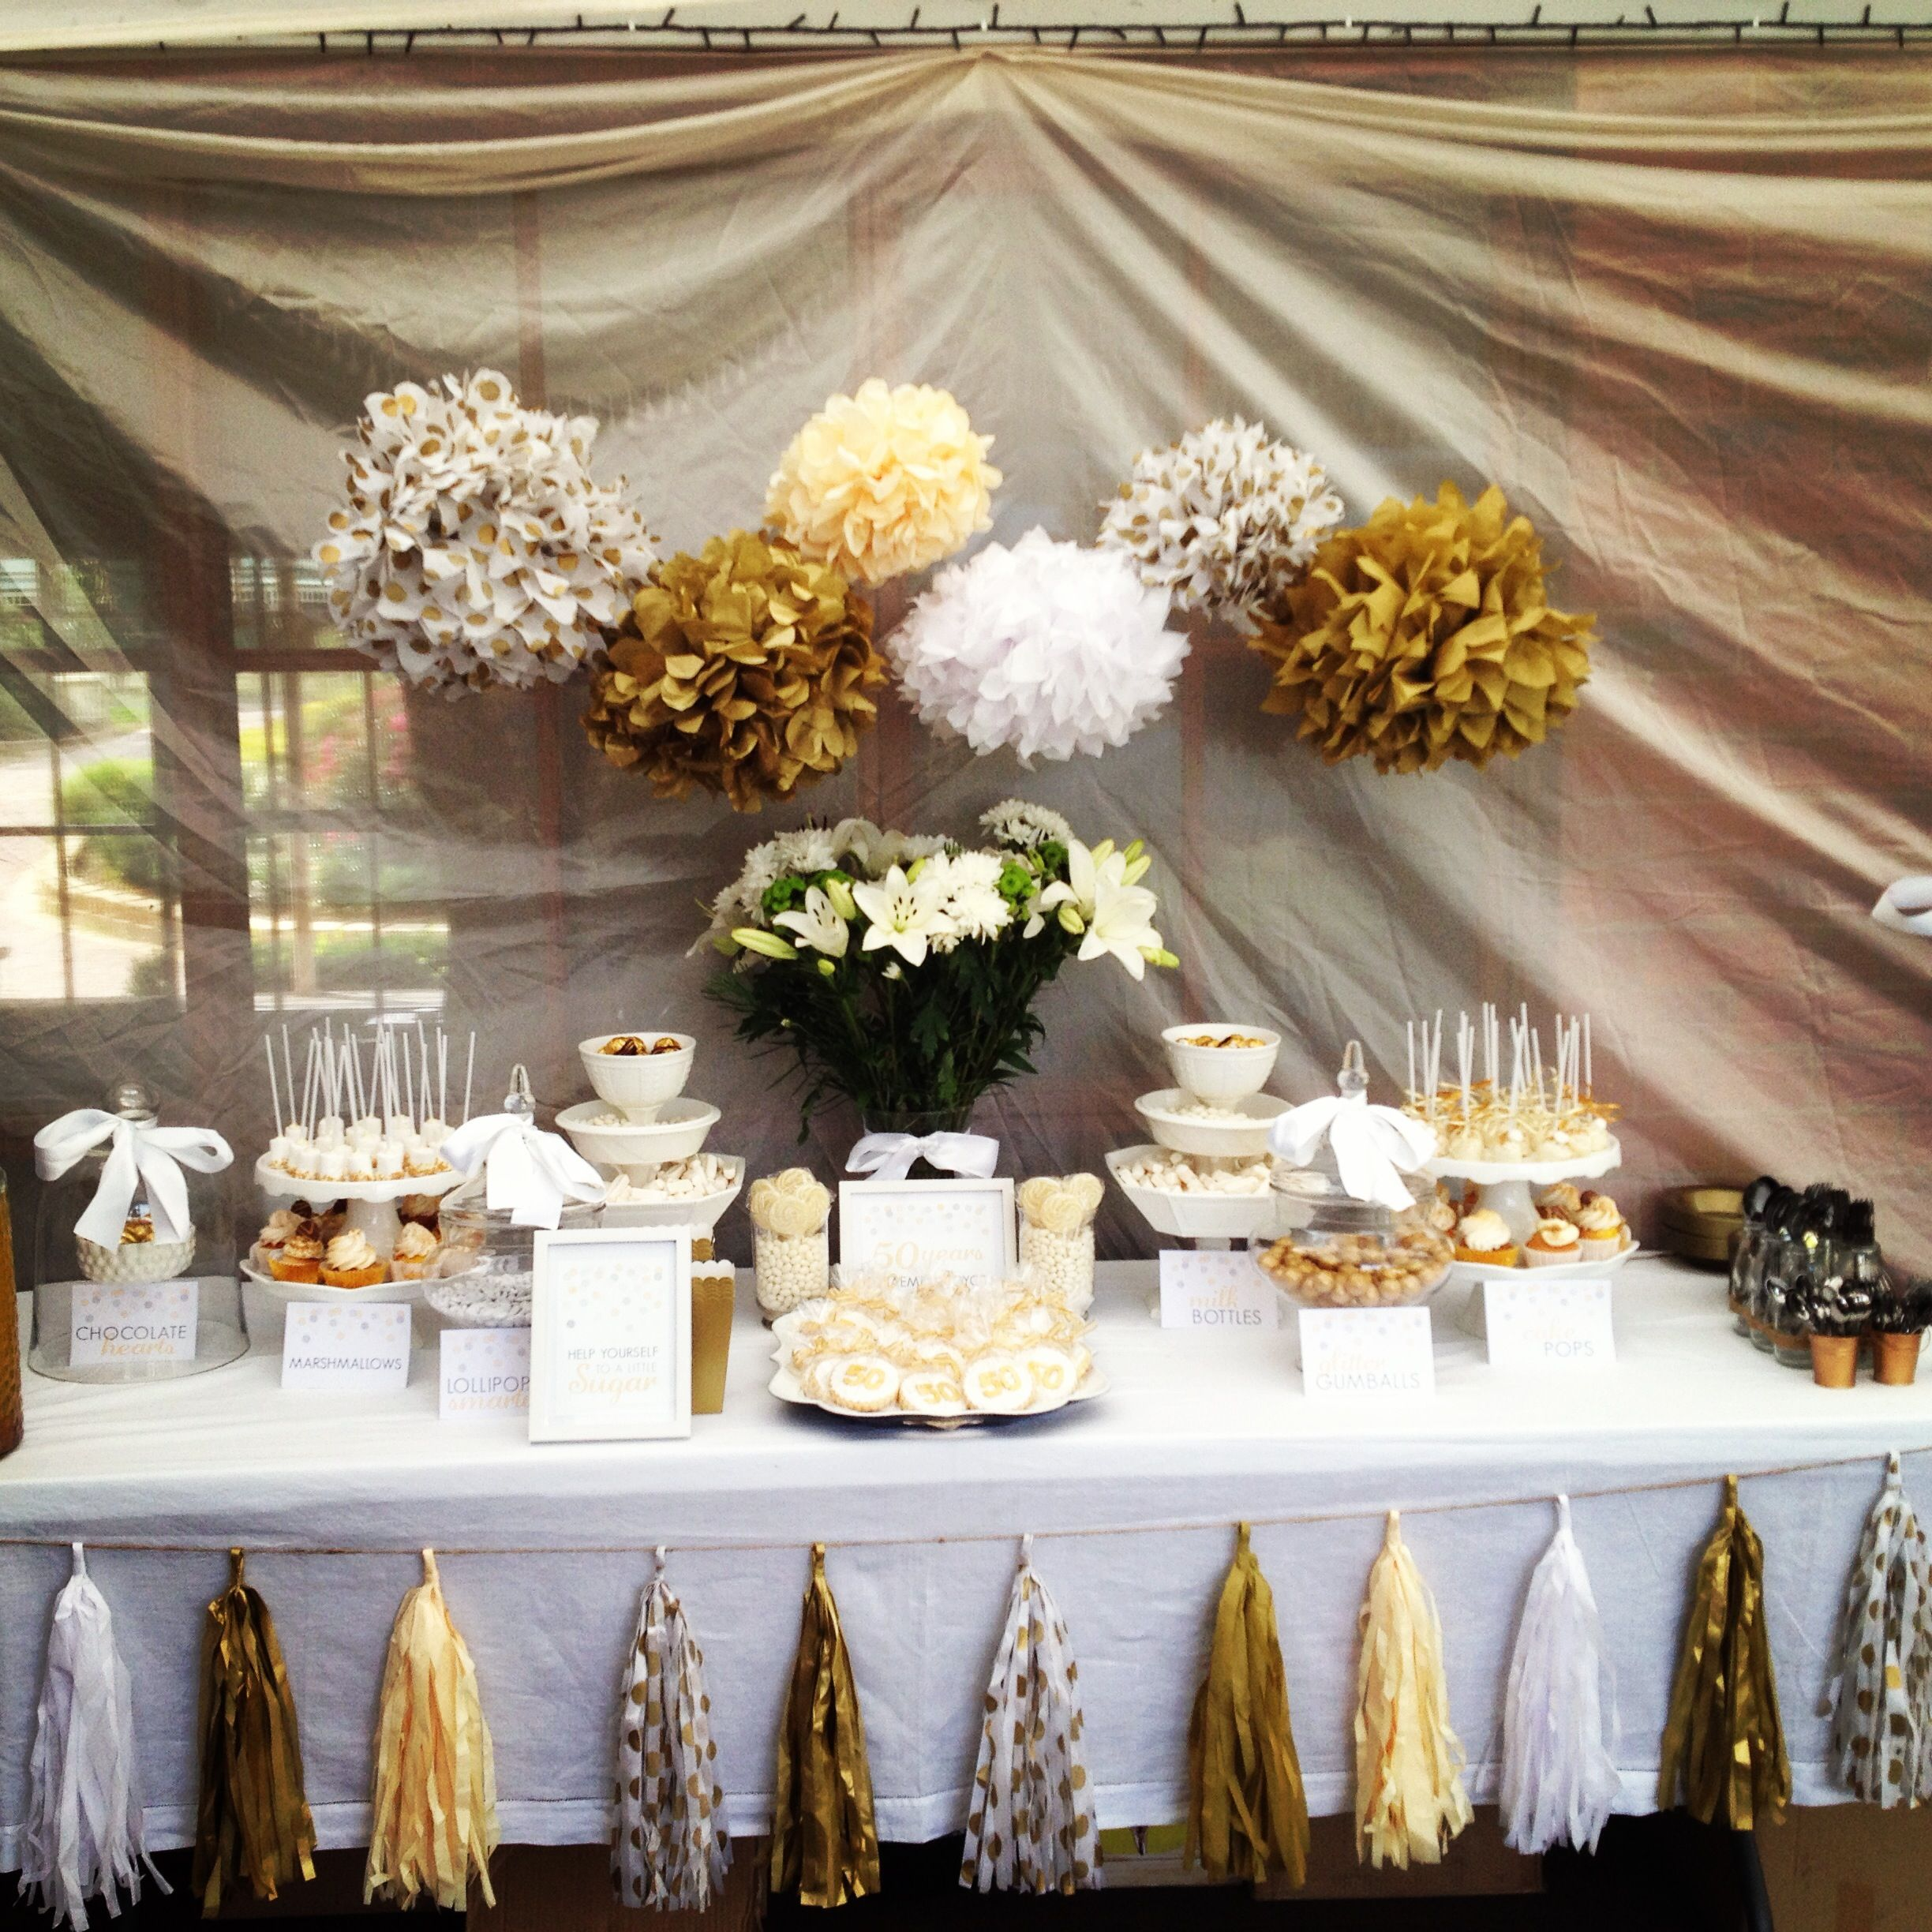 50th Wedding Anniversary Party Ideas: Polkadot Parties - 50th Wedding Anniversary